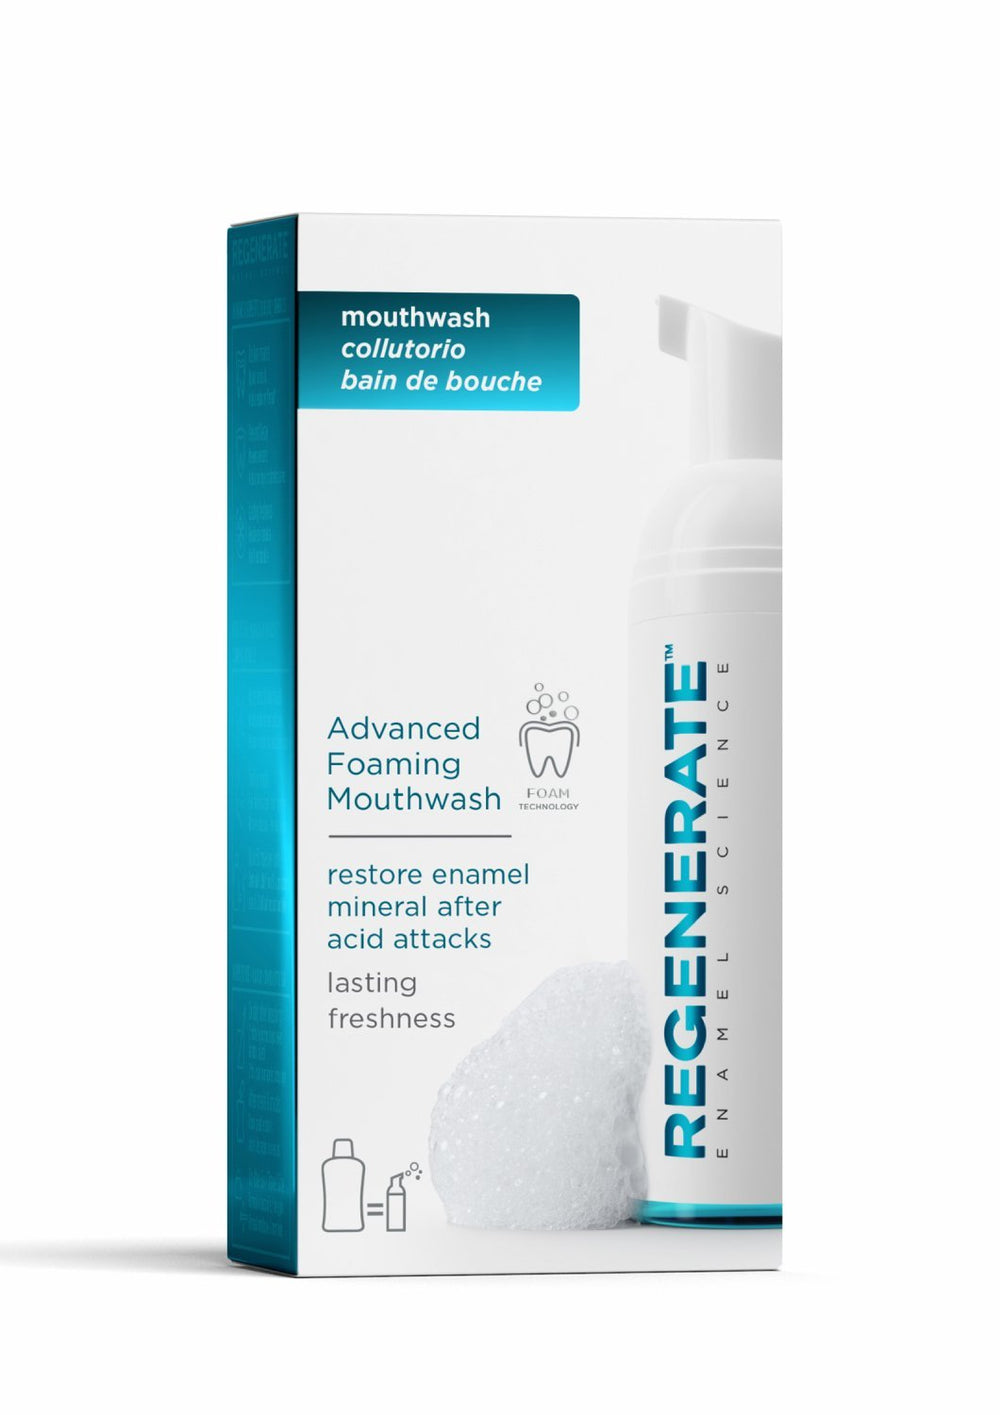 Regenerate Advanced Foaming Mouthwash Pack